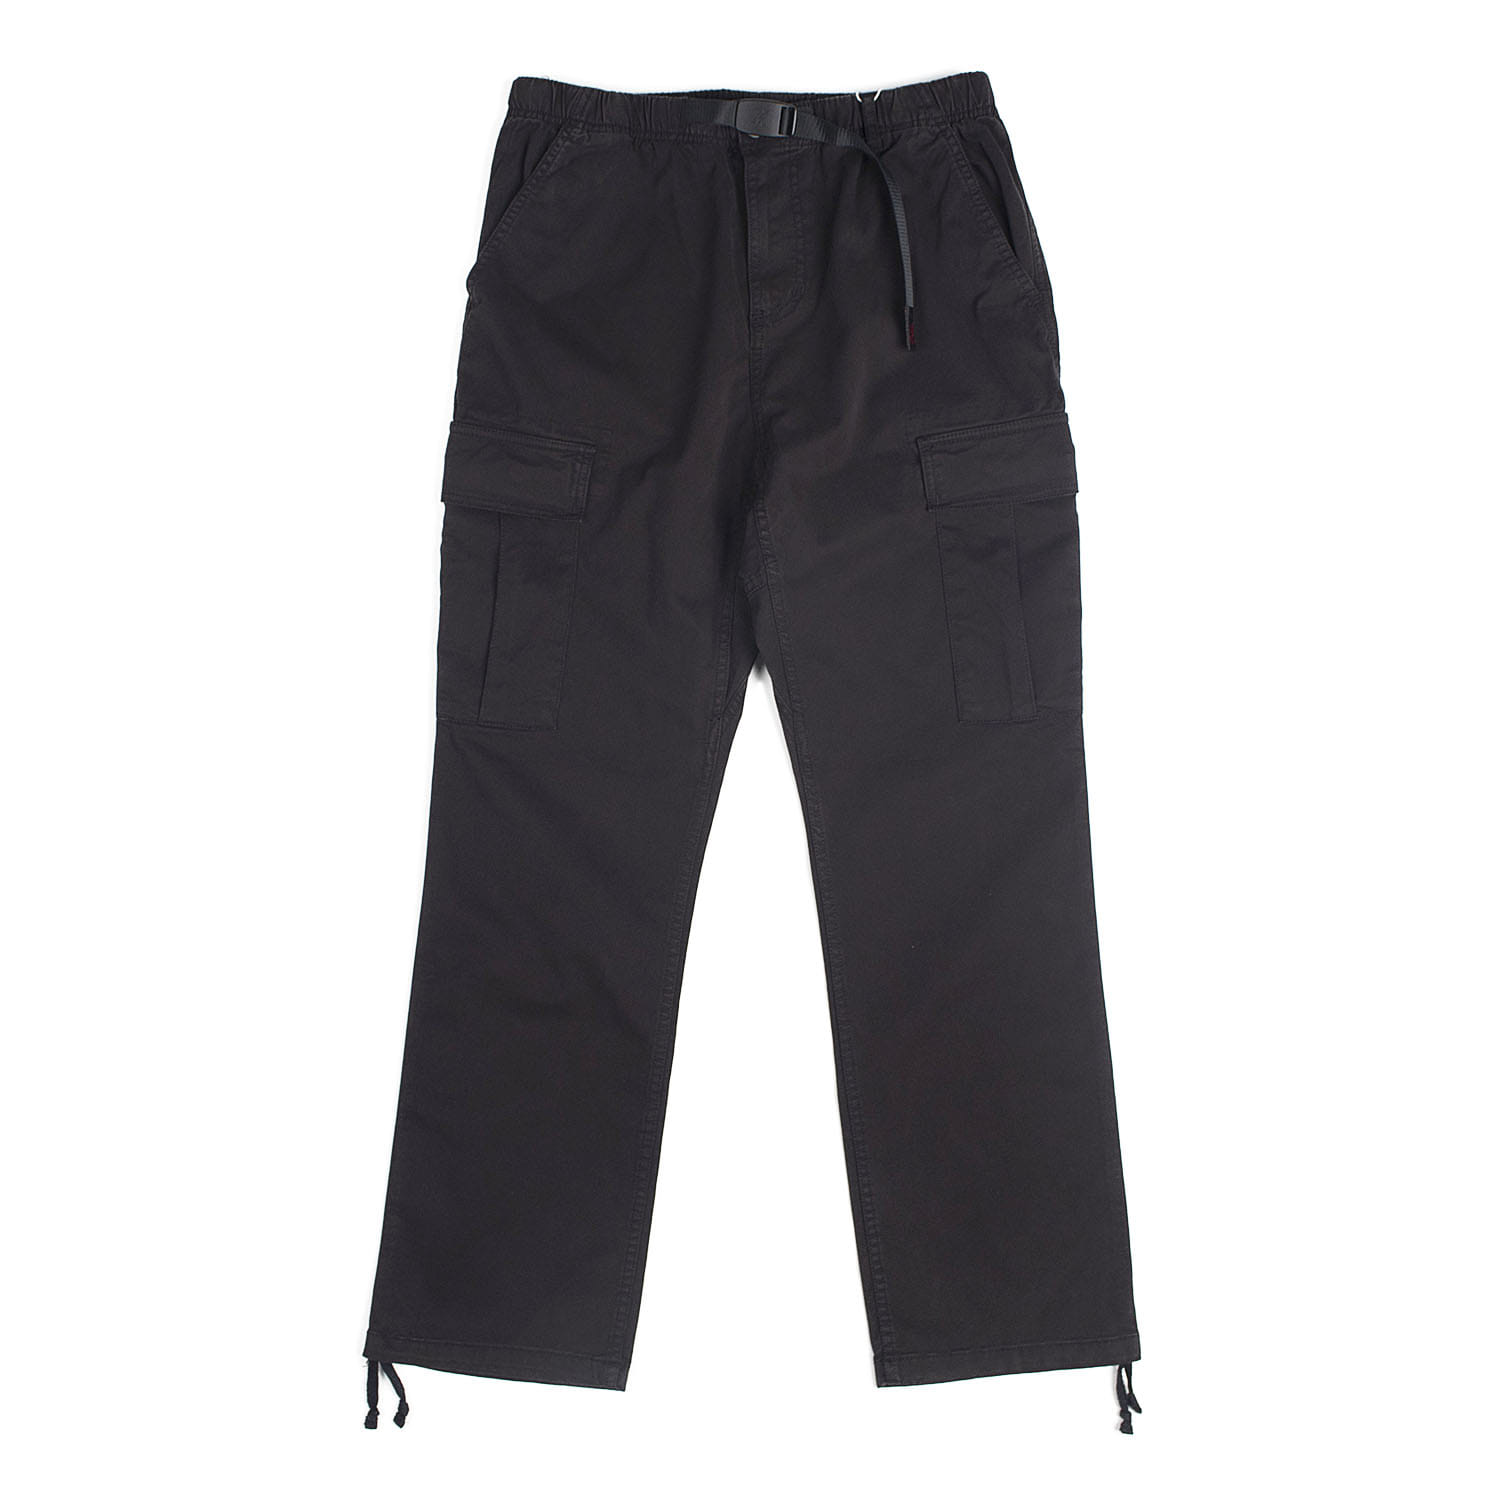 Gramicci Cargo Pants (Black)